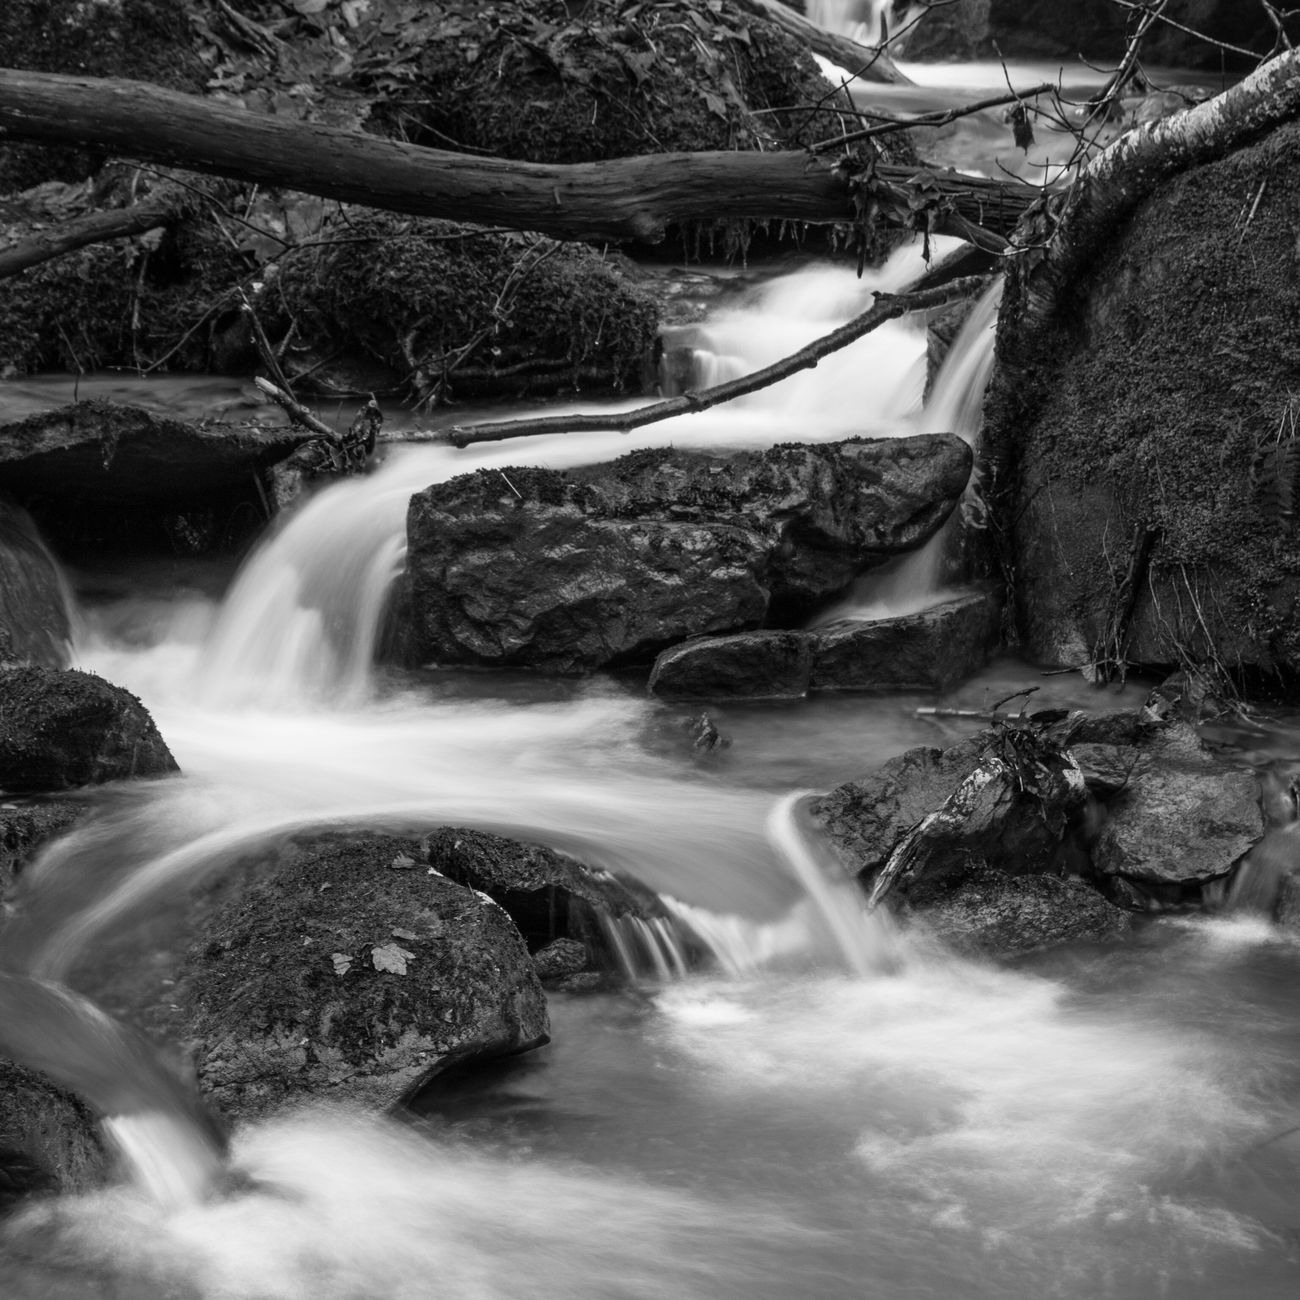 This was a stream alongside the North Country Trail, in the Allegheny National Forest in Pennsylvania. This was taken during our most recent backpacking trip. Long Exposure Waterfall Nature Water Scenics Flowing Water Forest Tranquil Scene No People Stream - Flowing Water Outdoors Beauty In Nature Winter Travel Photography Hiking Backpacking Allegheny National Forest National Forest Pennsylvania B&w